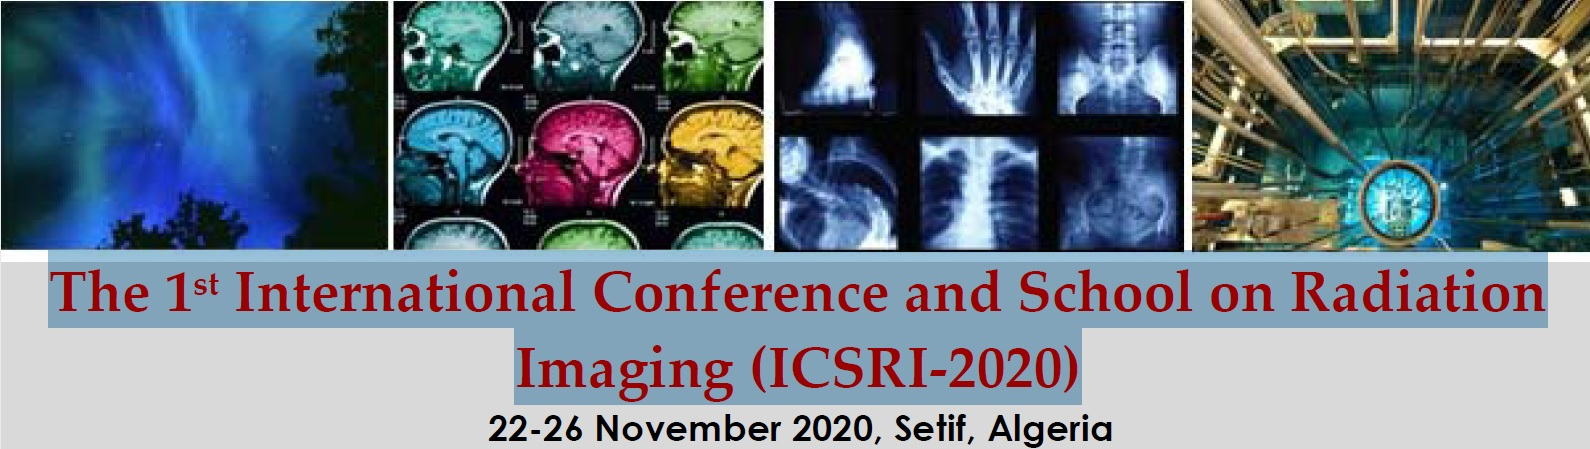 The 1st International Conference and School on Radiation Imaging (ICSRI-2020)